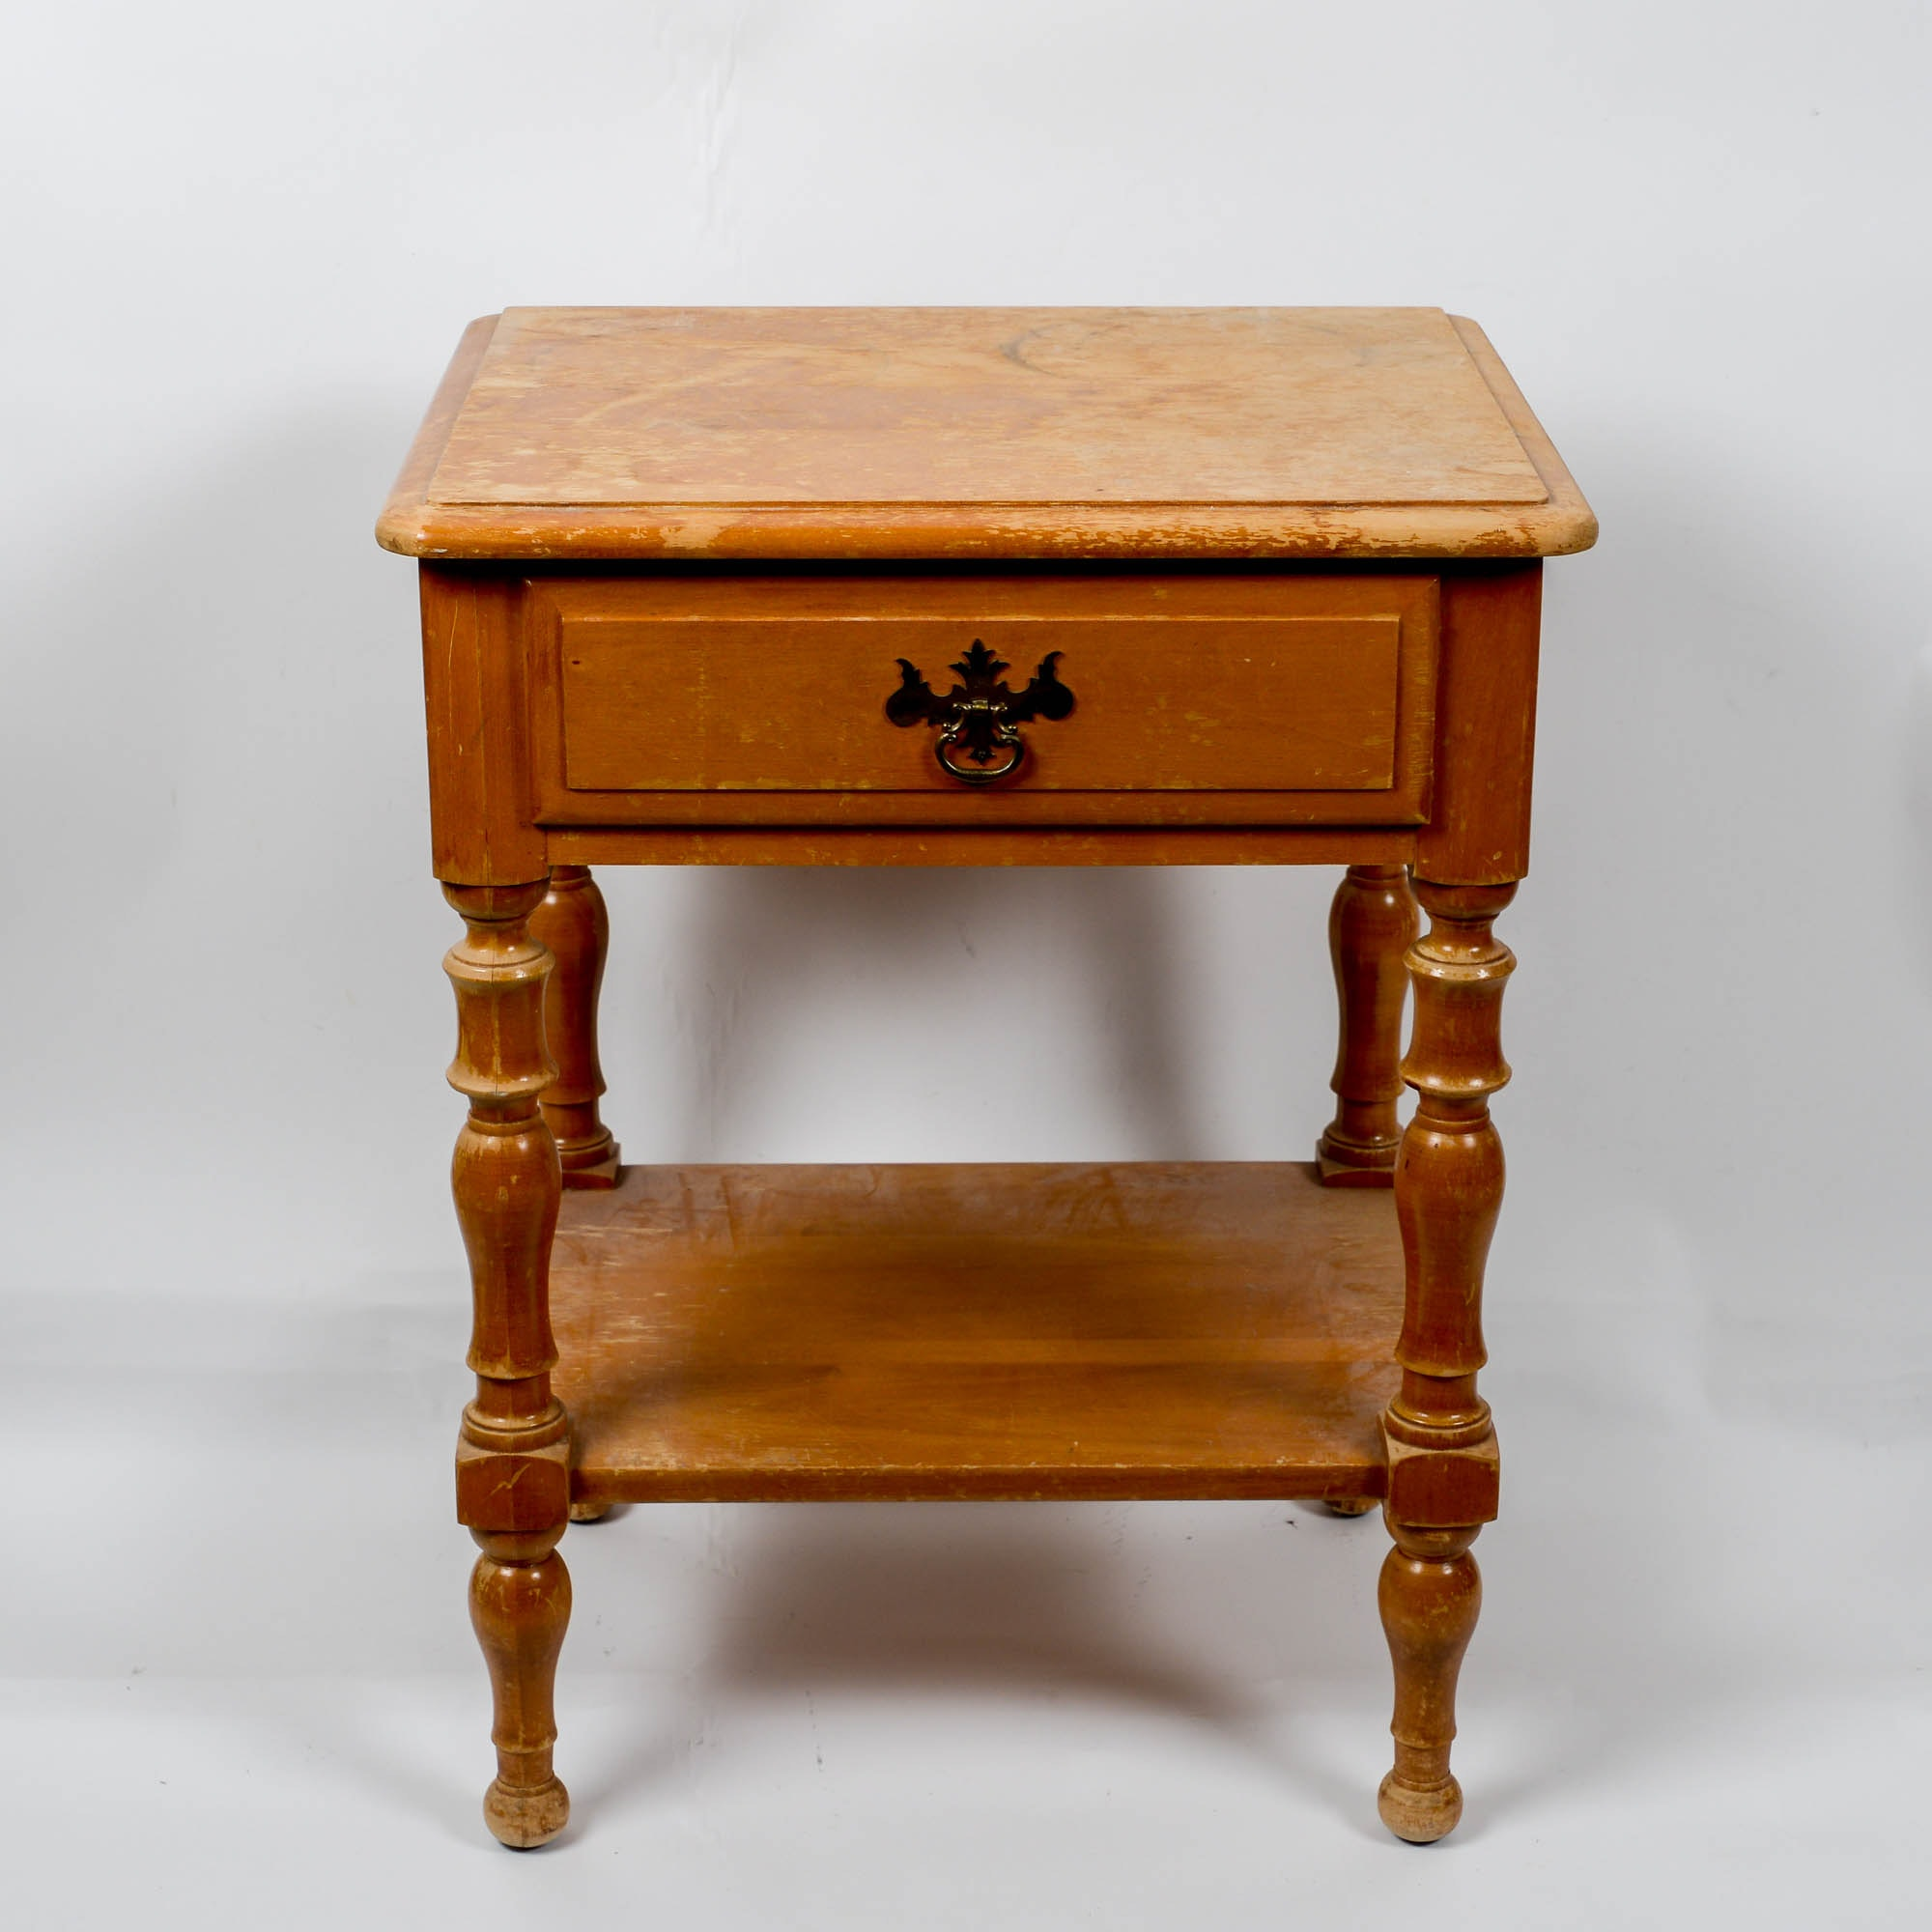 Vintage Colonial Revival Style Side Table By Kling Furniture ...